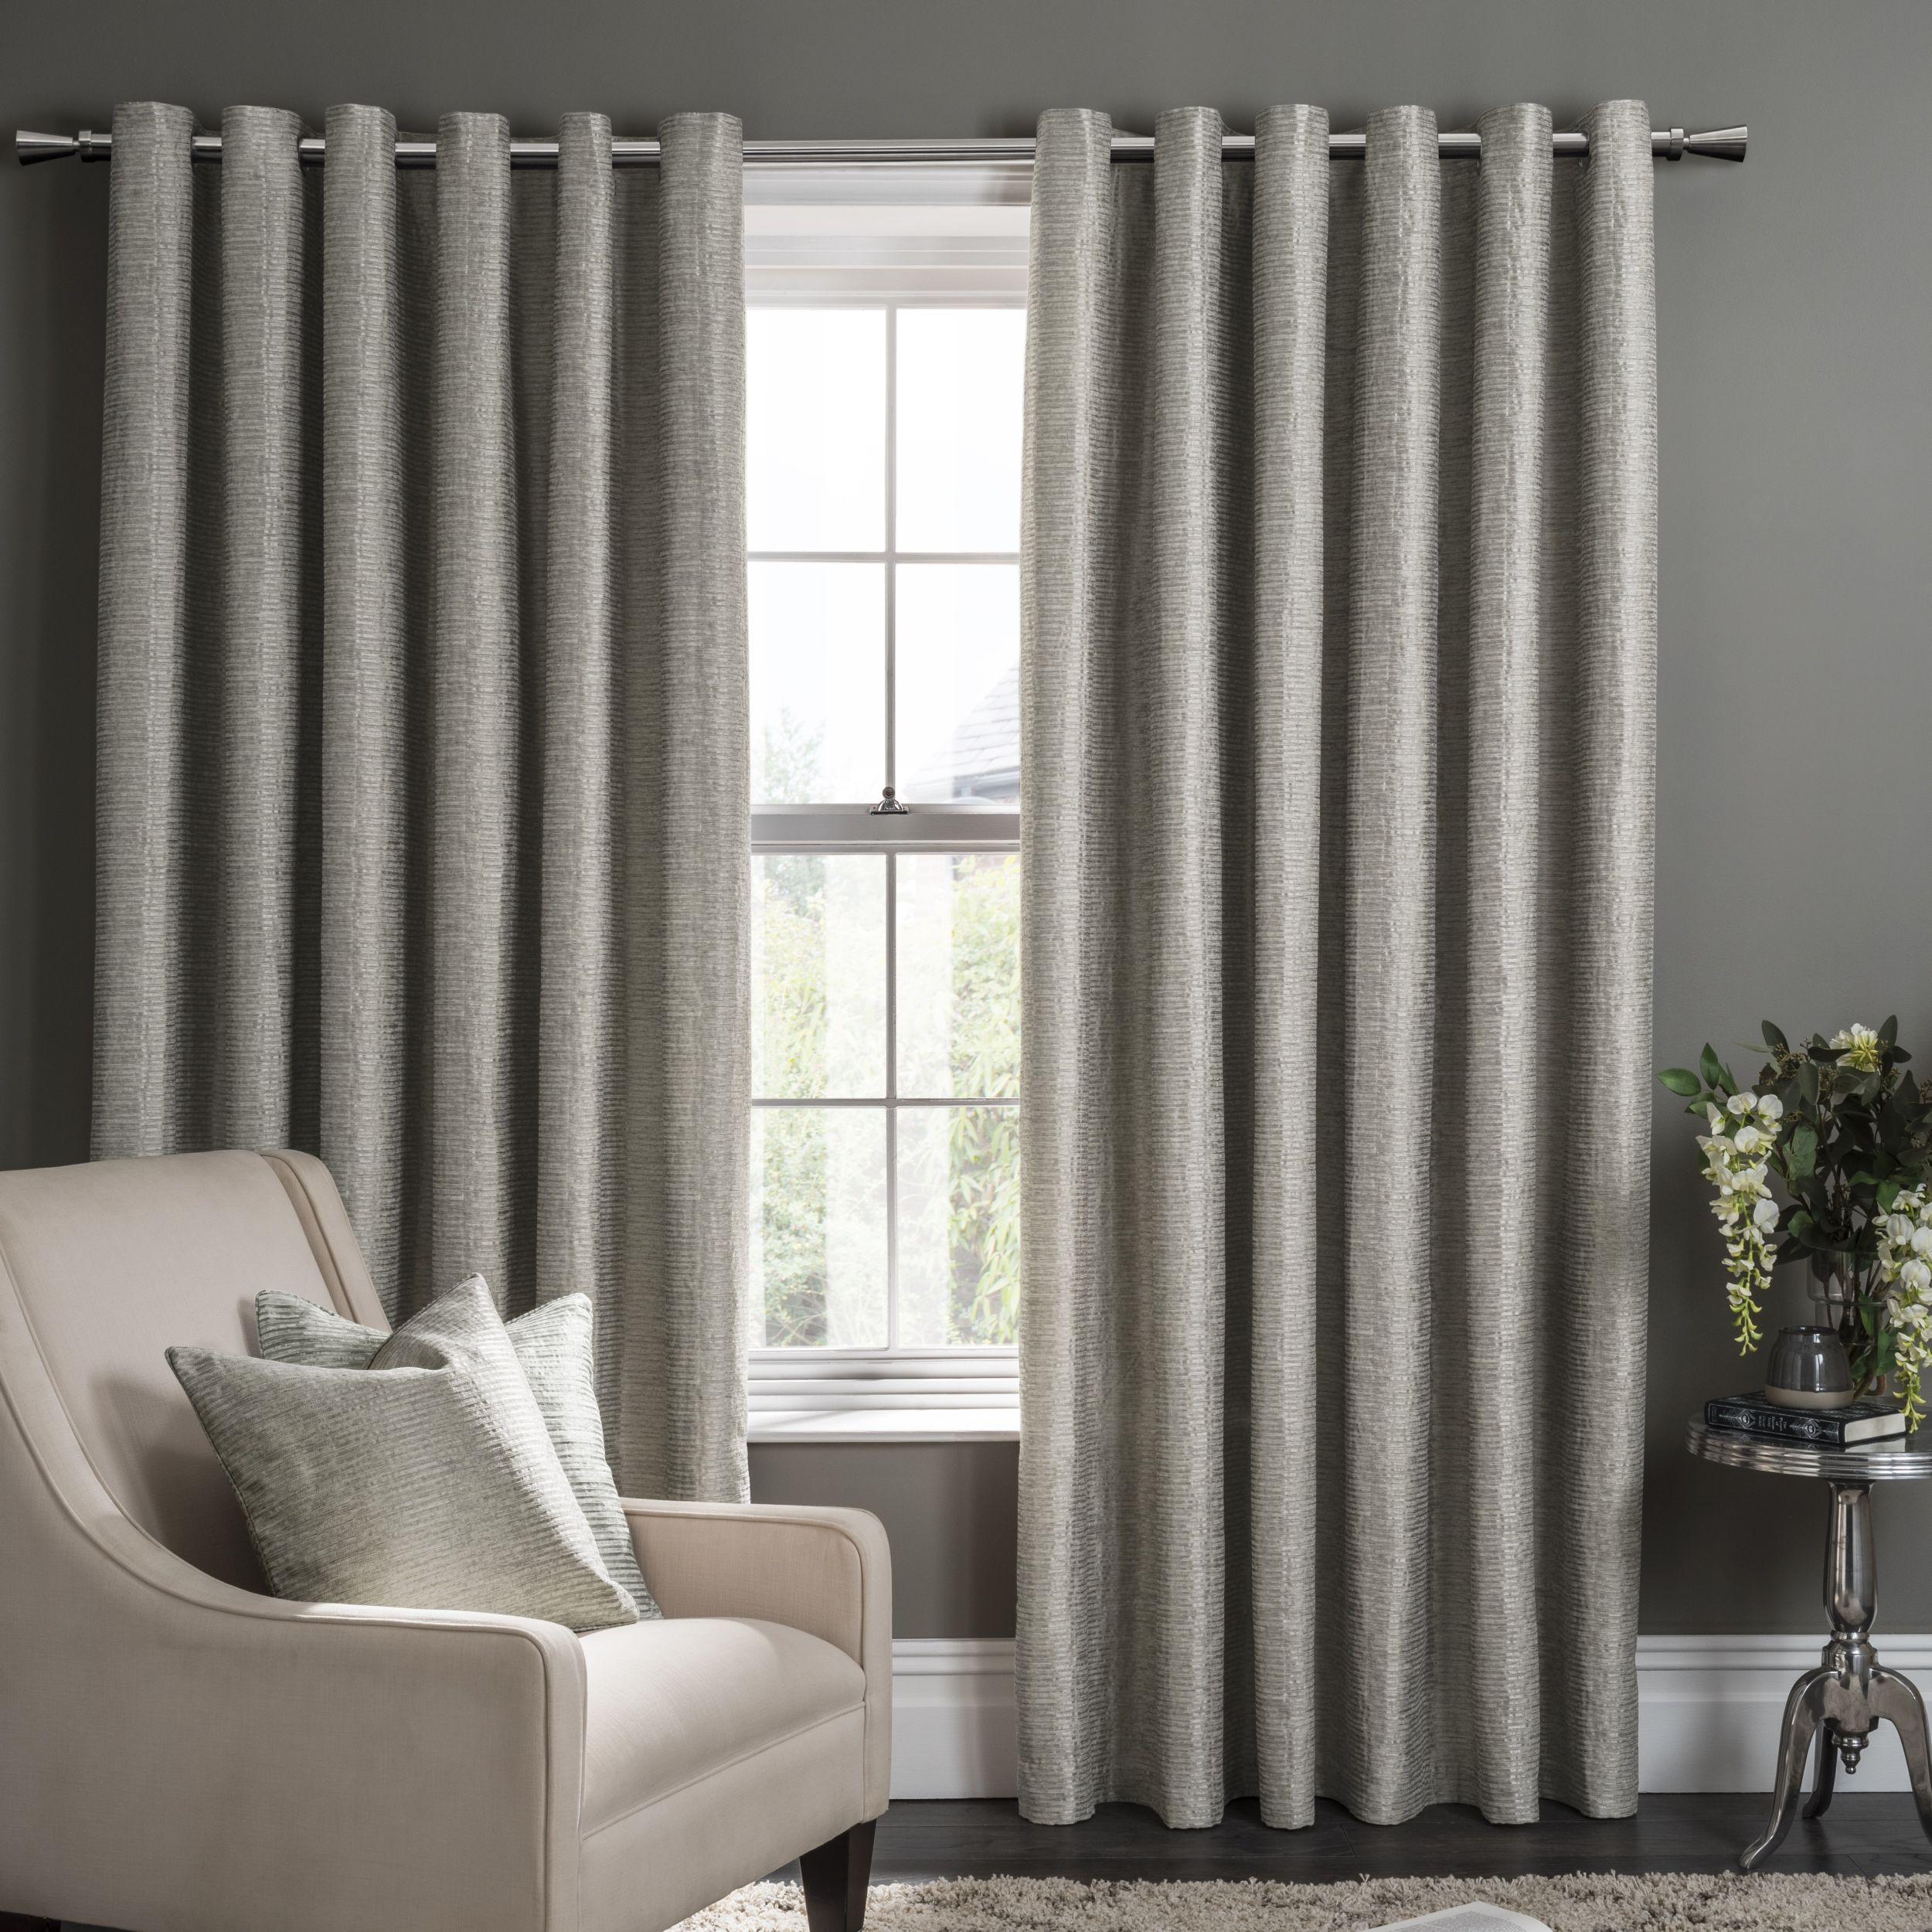 made mcbride ready suede readymade eyelet hamilton products curtains ring plain grey textiles faux group by curtain lined ringtop top